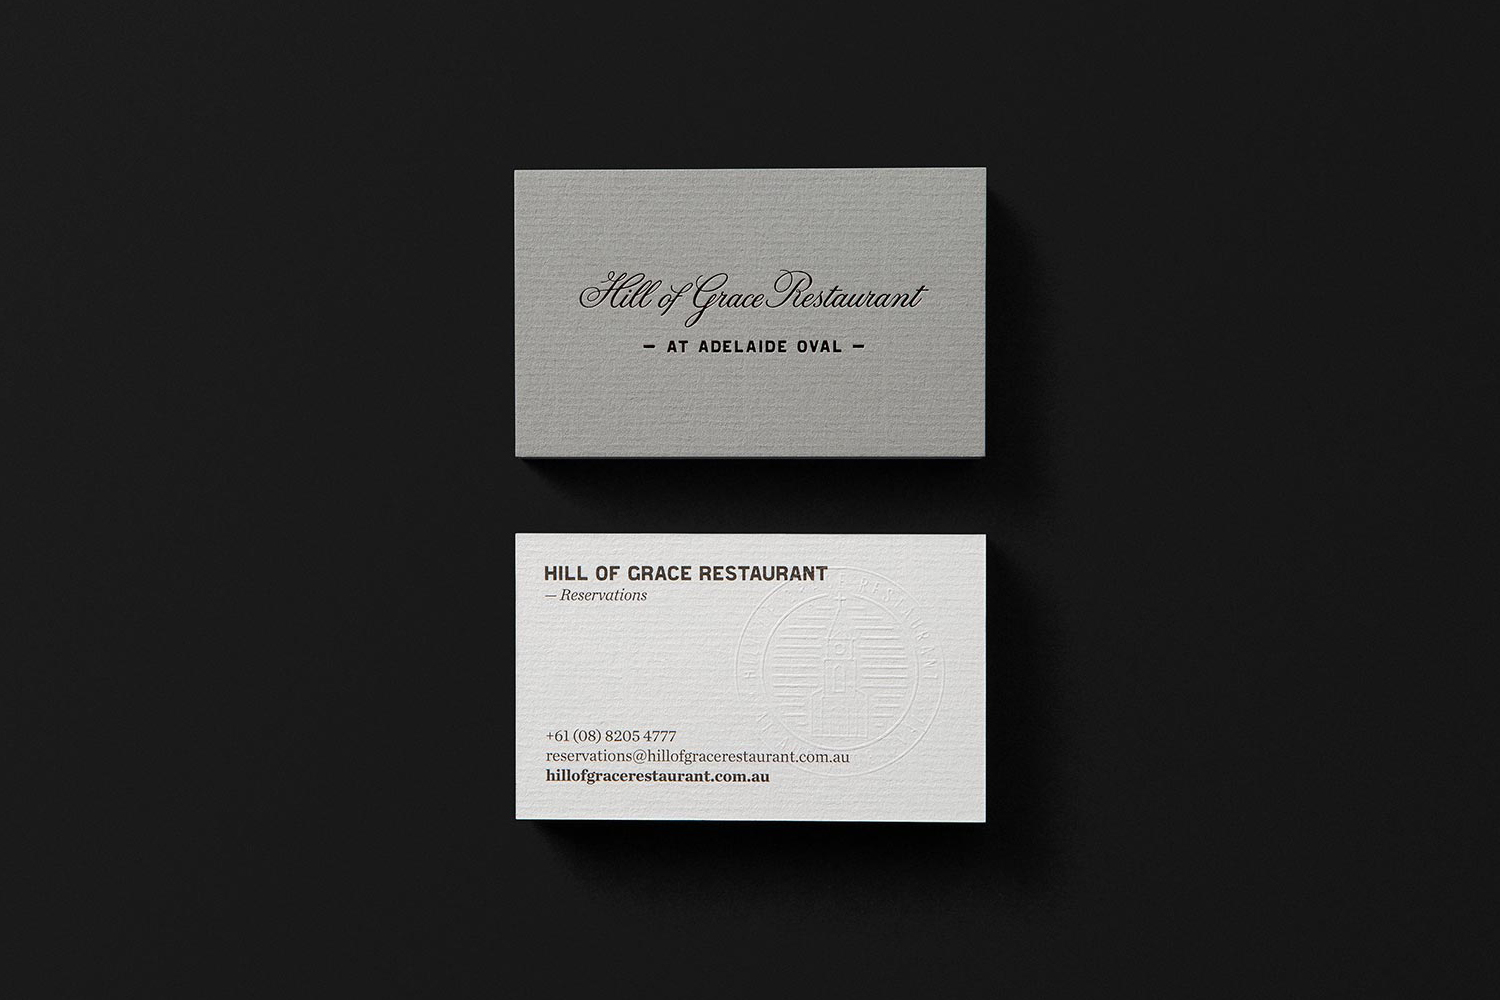 Business Card Design Ideas business card design ideas for 2017 Business Card Design Ideas Hill Of Grace By Band Australia